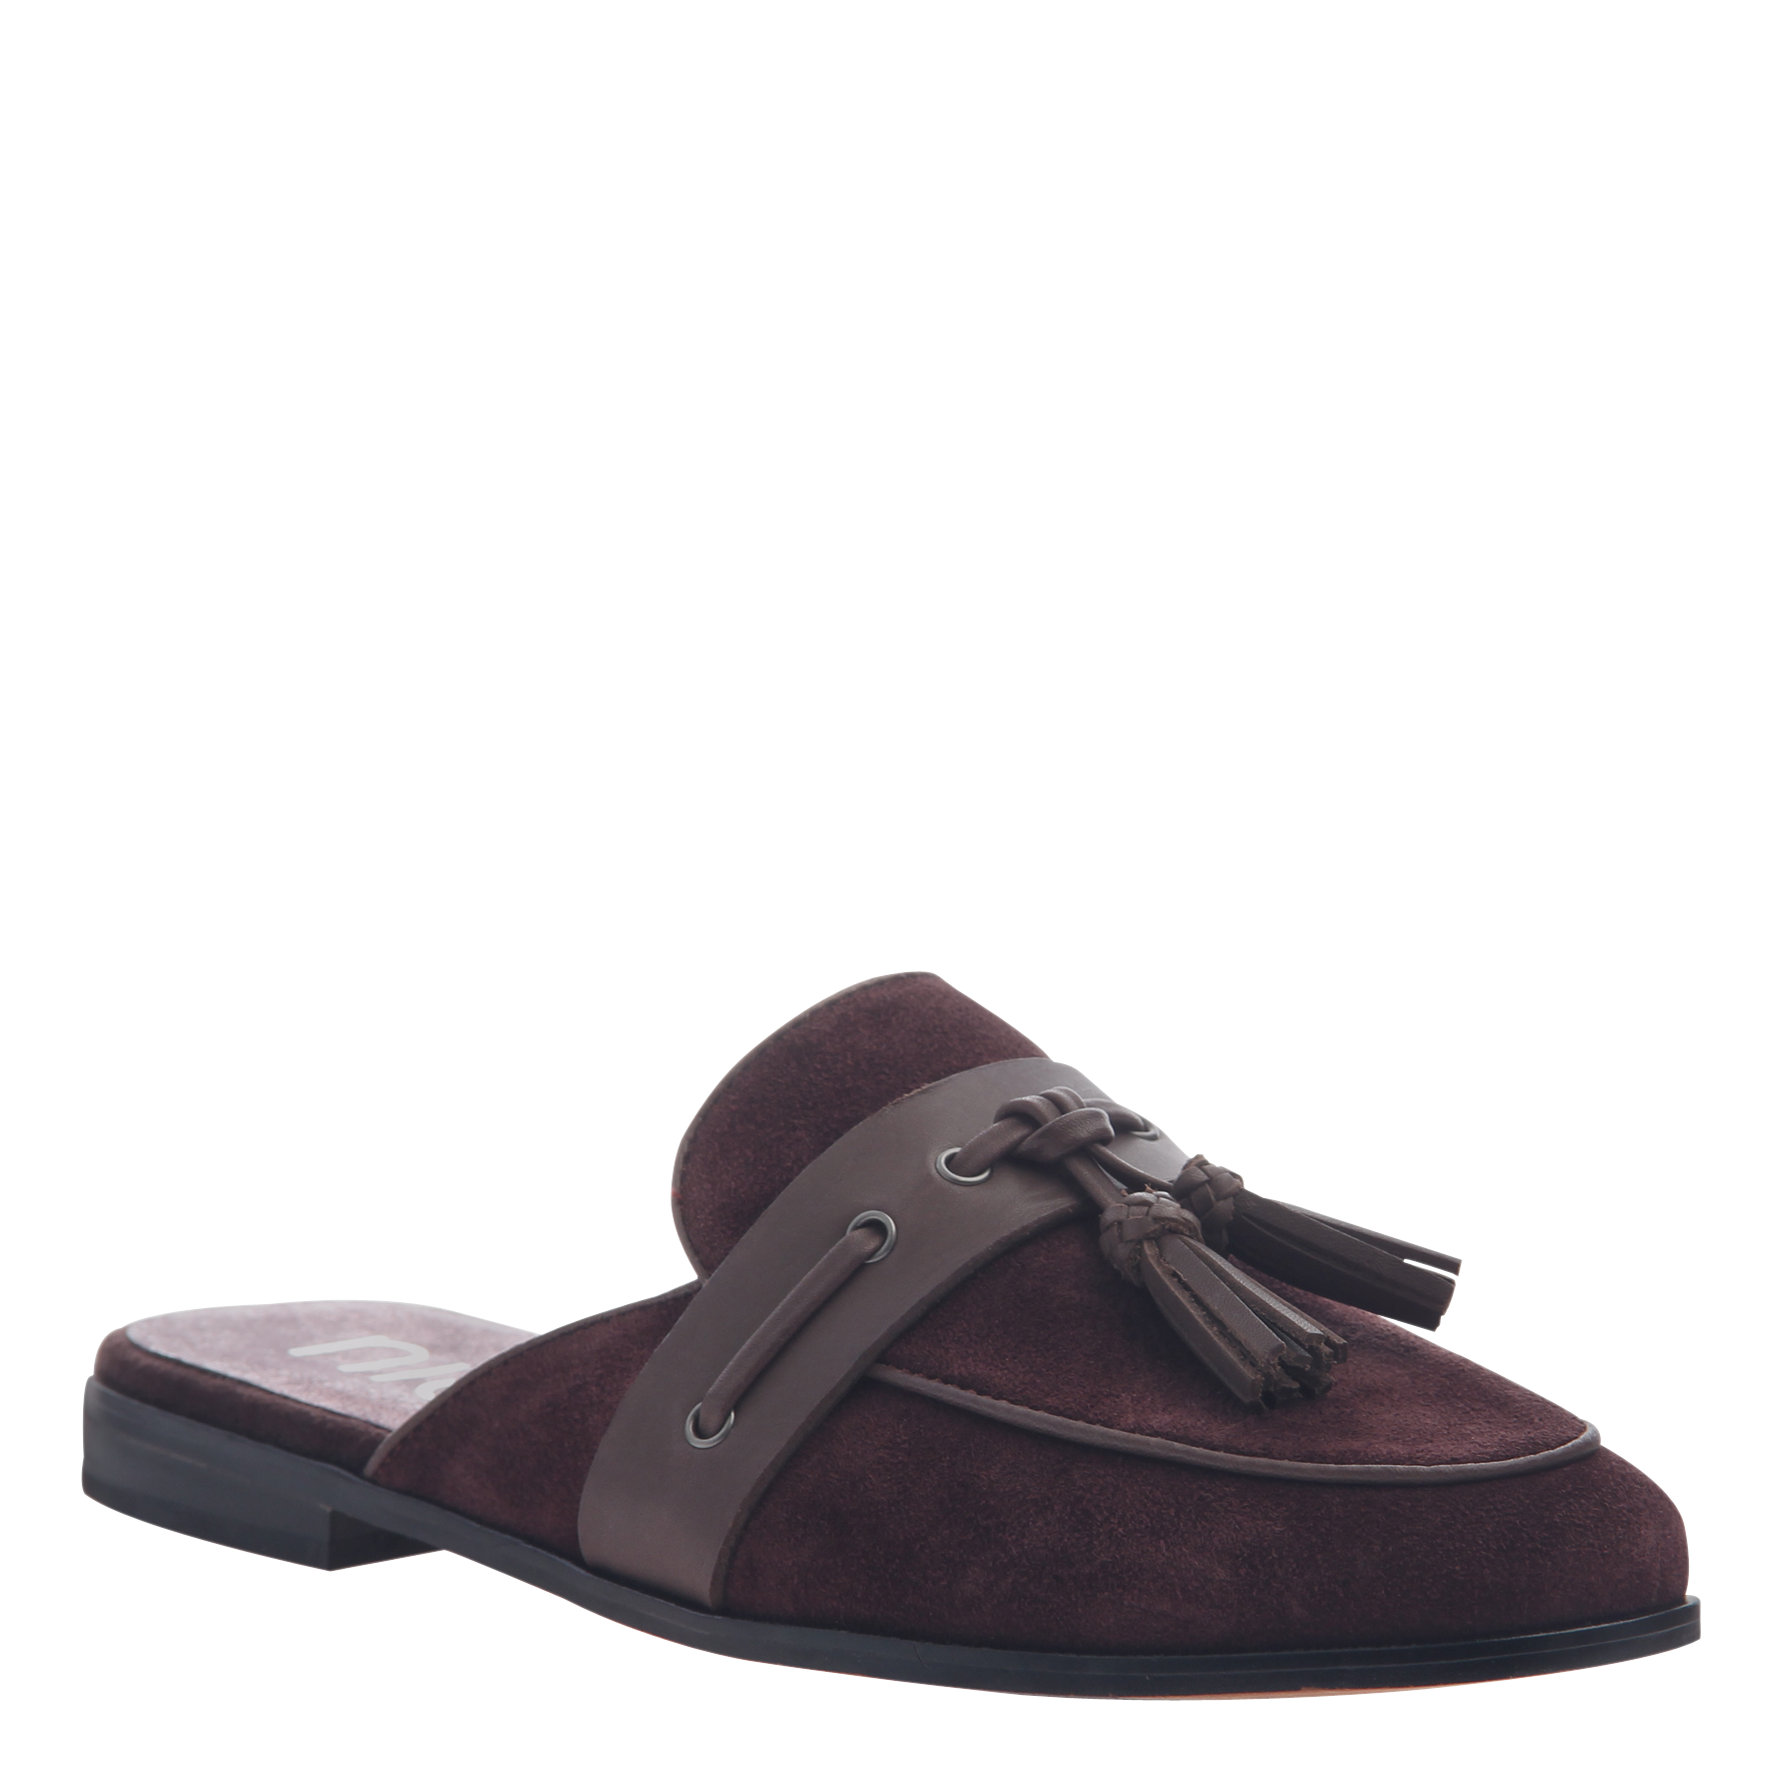 Womens slip on loafer Yulia in burgundy